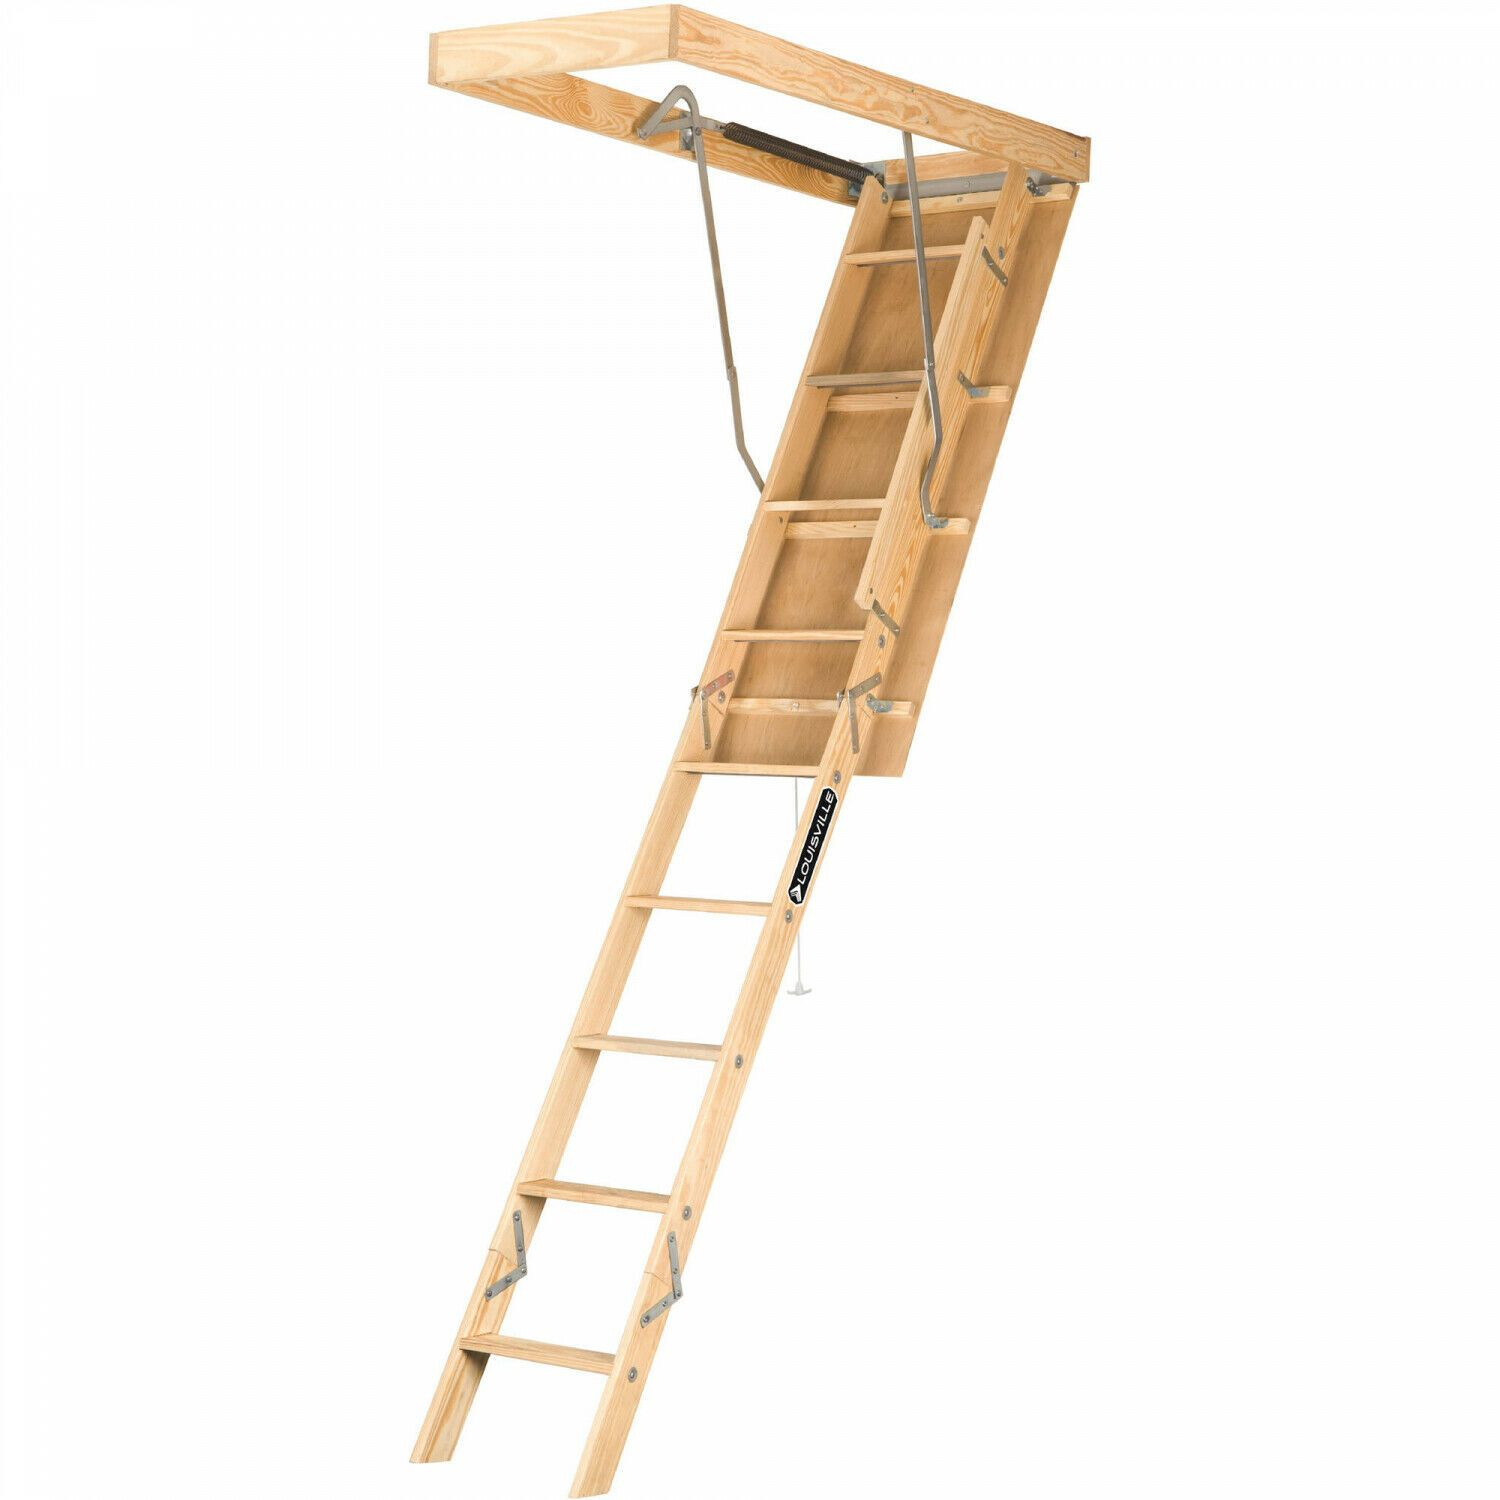 Attic Ladder Pull Down Folding Stairs Wood Steps Ceiling Door Access Louisville 47345102211 Ebay In 2020 Attic Ladder Attic Access Ladder Versa Lift